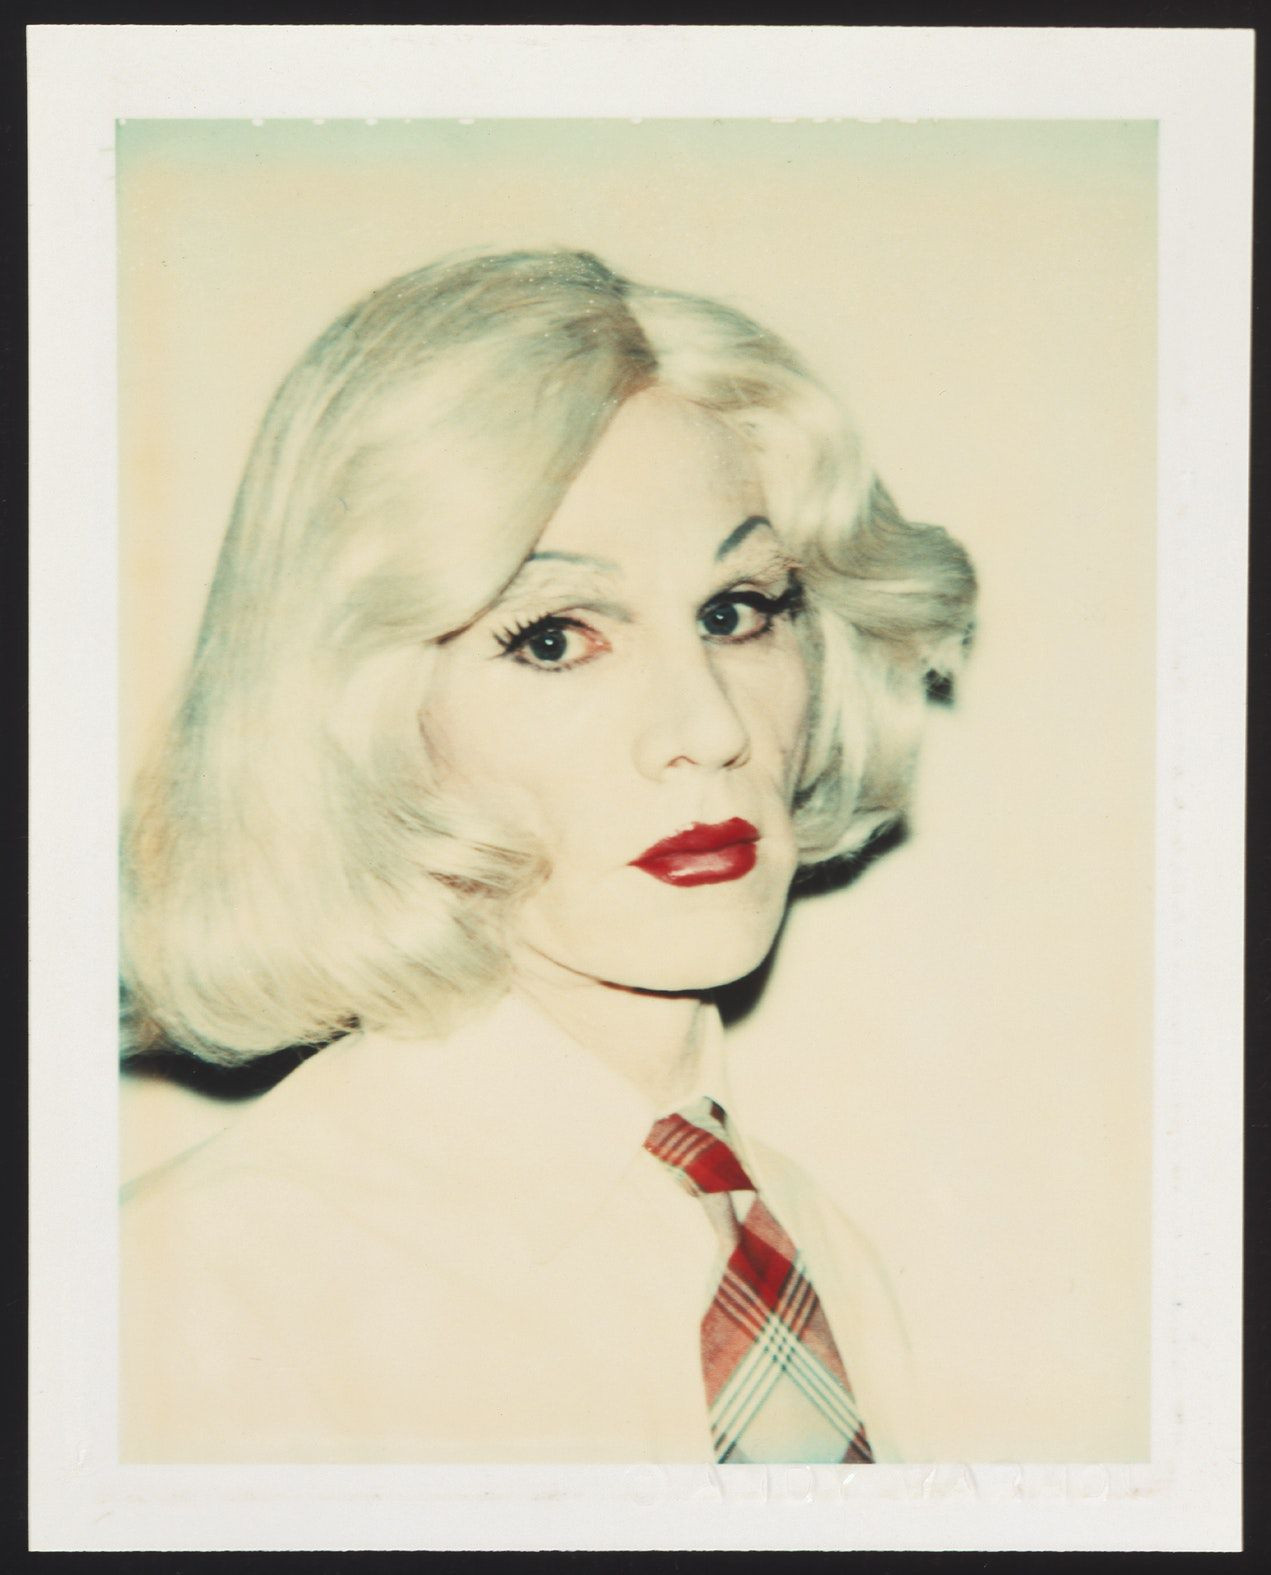 """Andy Warhol, """"Portrait as a drag"""",© The Andy Warhol Foundation for the Visual Arts / ARS, New York. Credit : Butler Family Fund, 2003."""